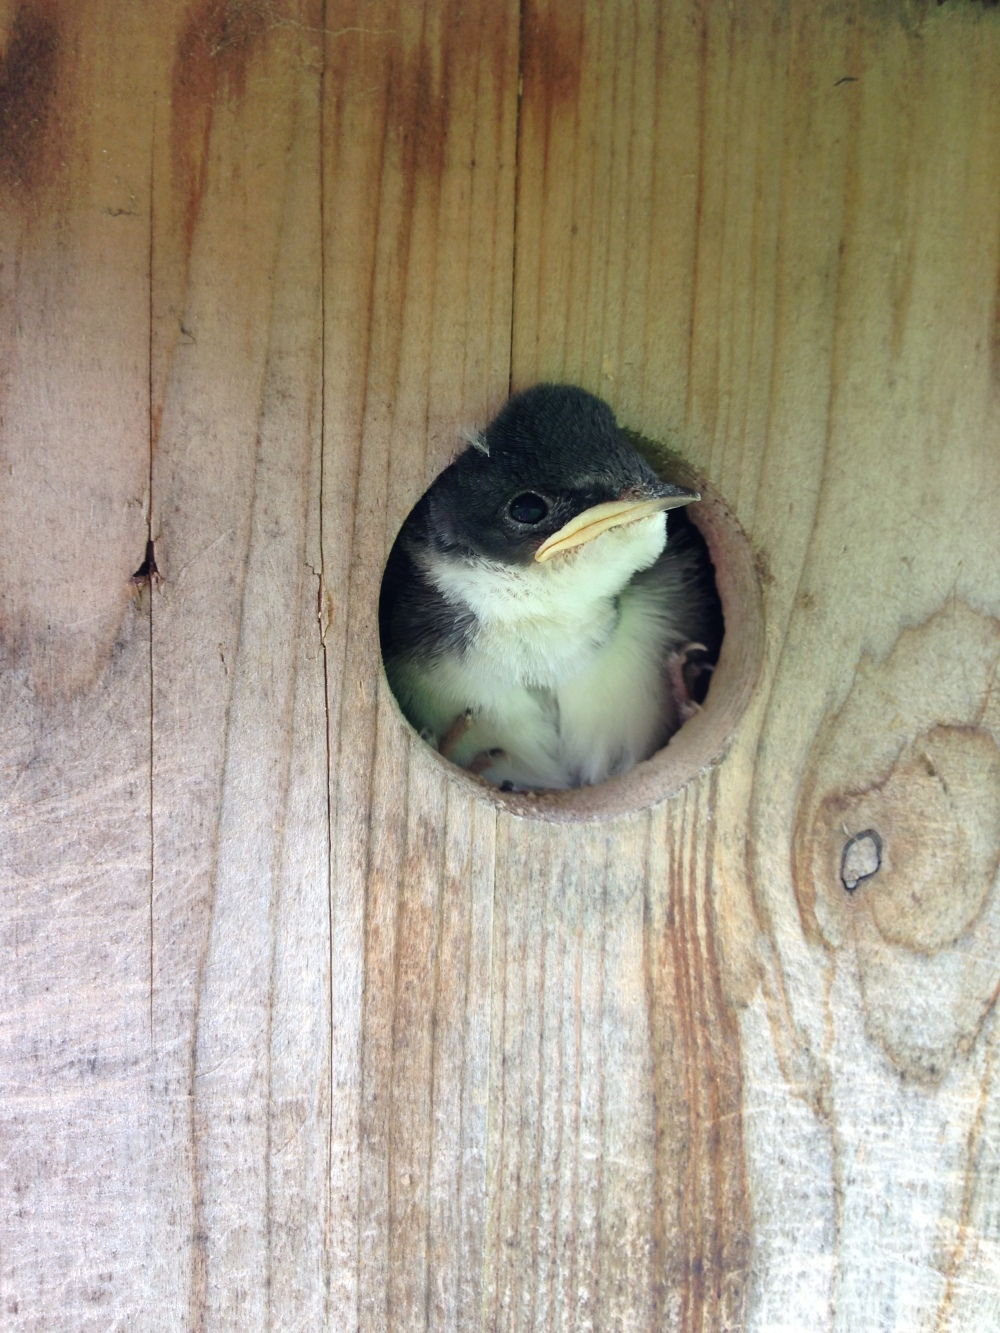 Tree swallow chick.  Photo by Blake Goll